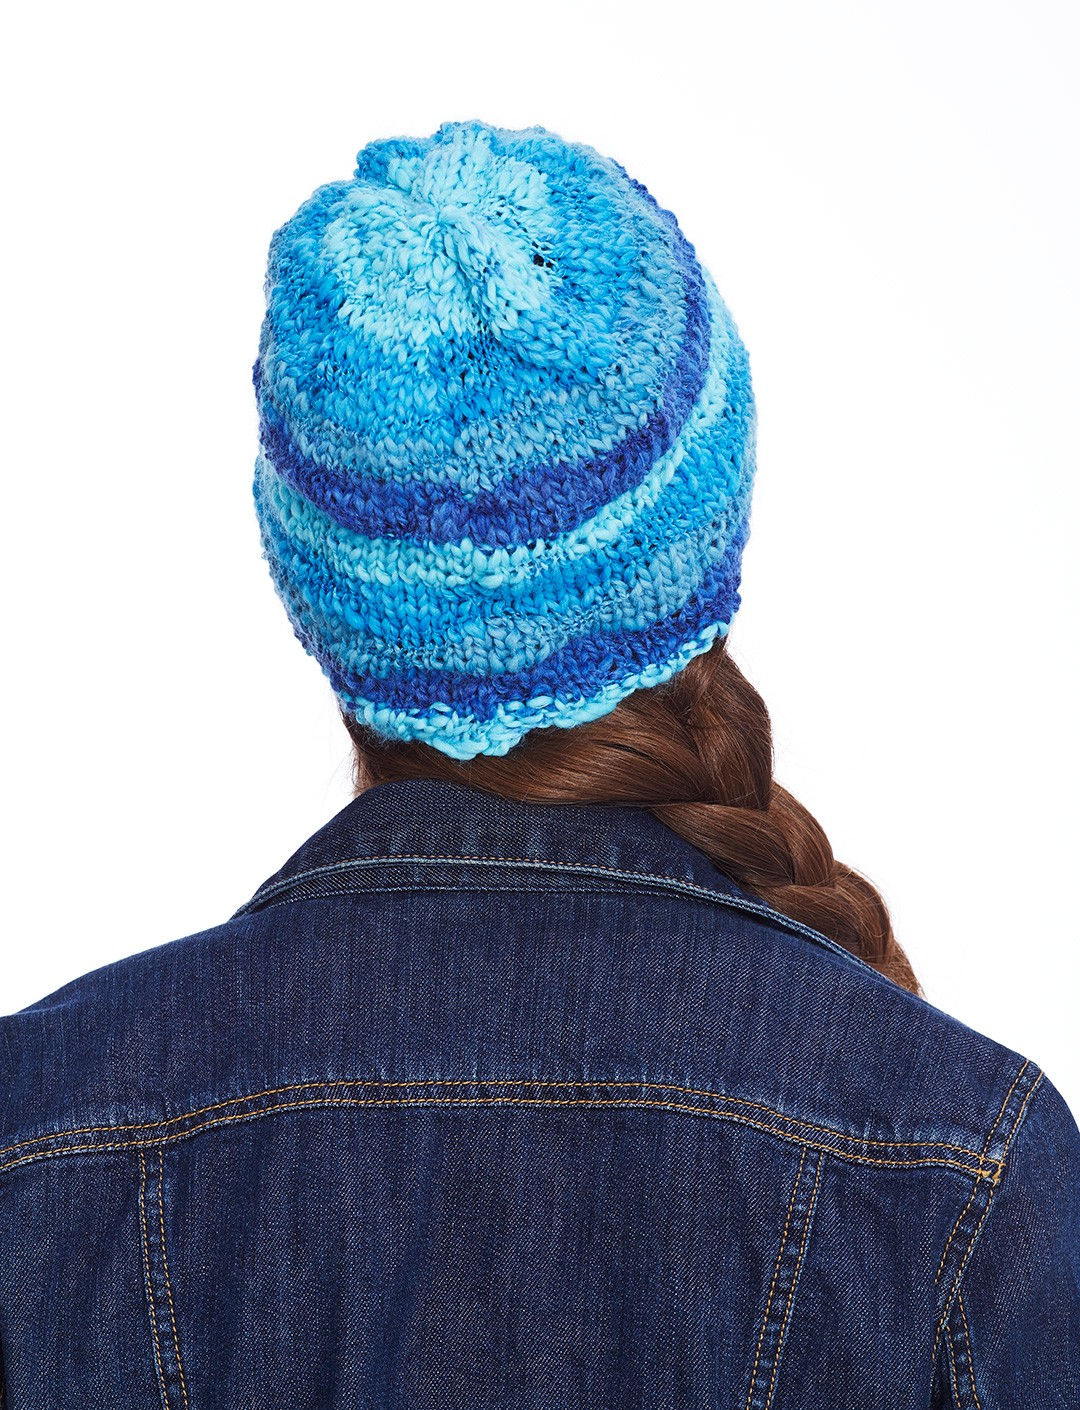 Knitting Pattern Basic Beanie : Bernat Basic Beanie, Knit Pattern Yarnspirations